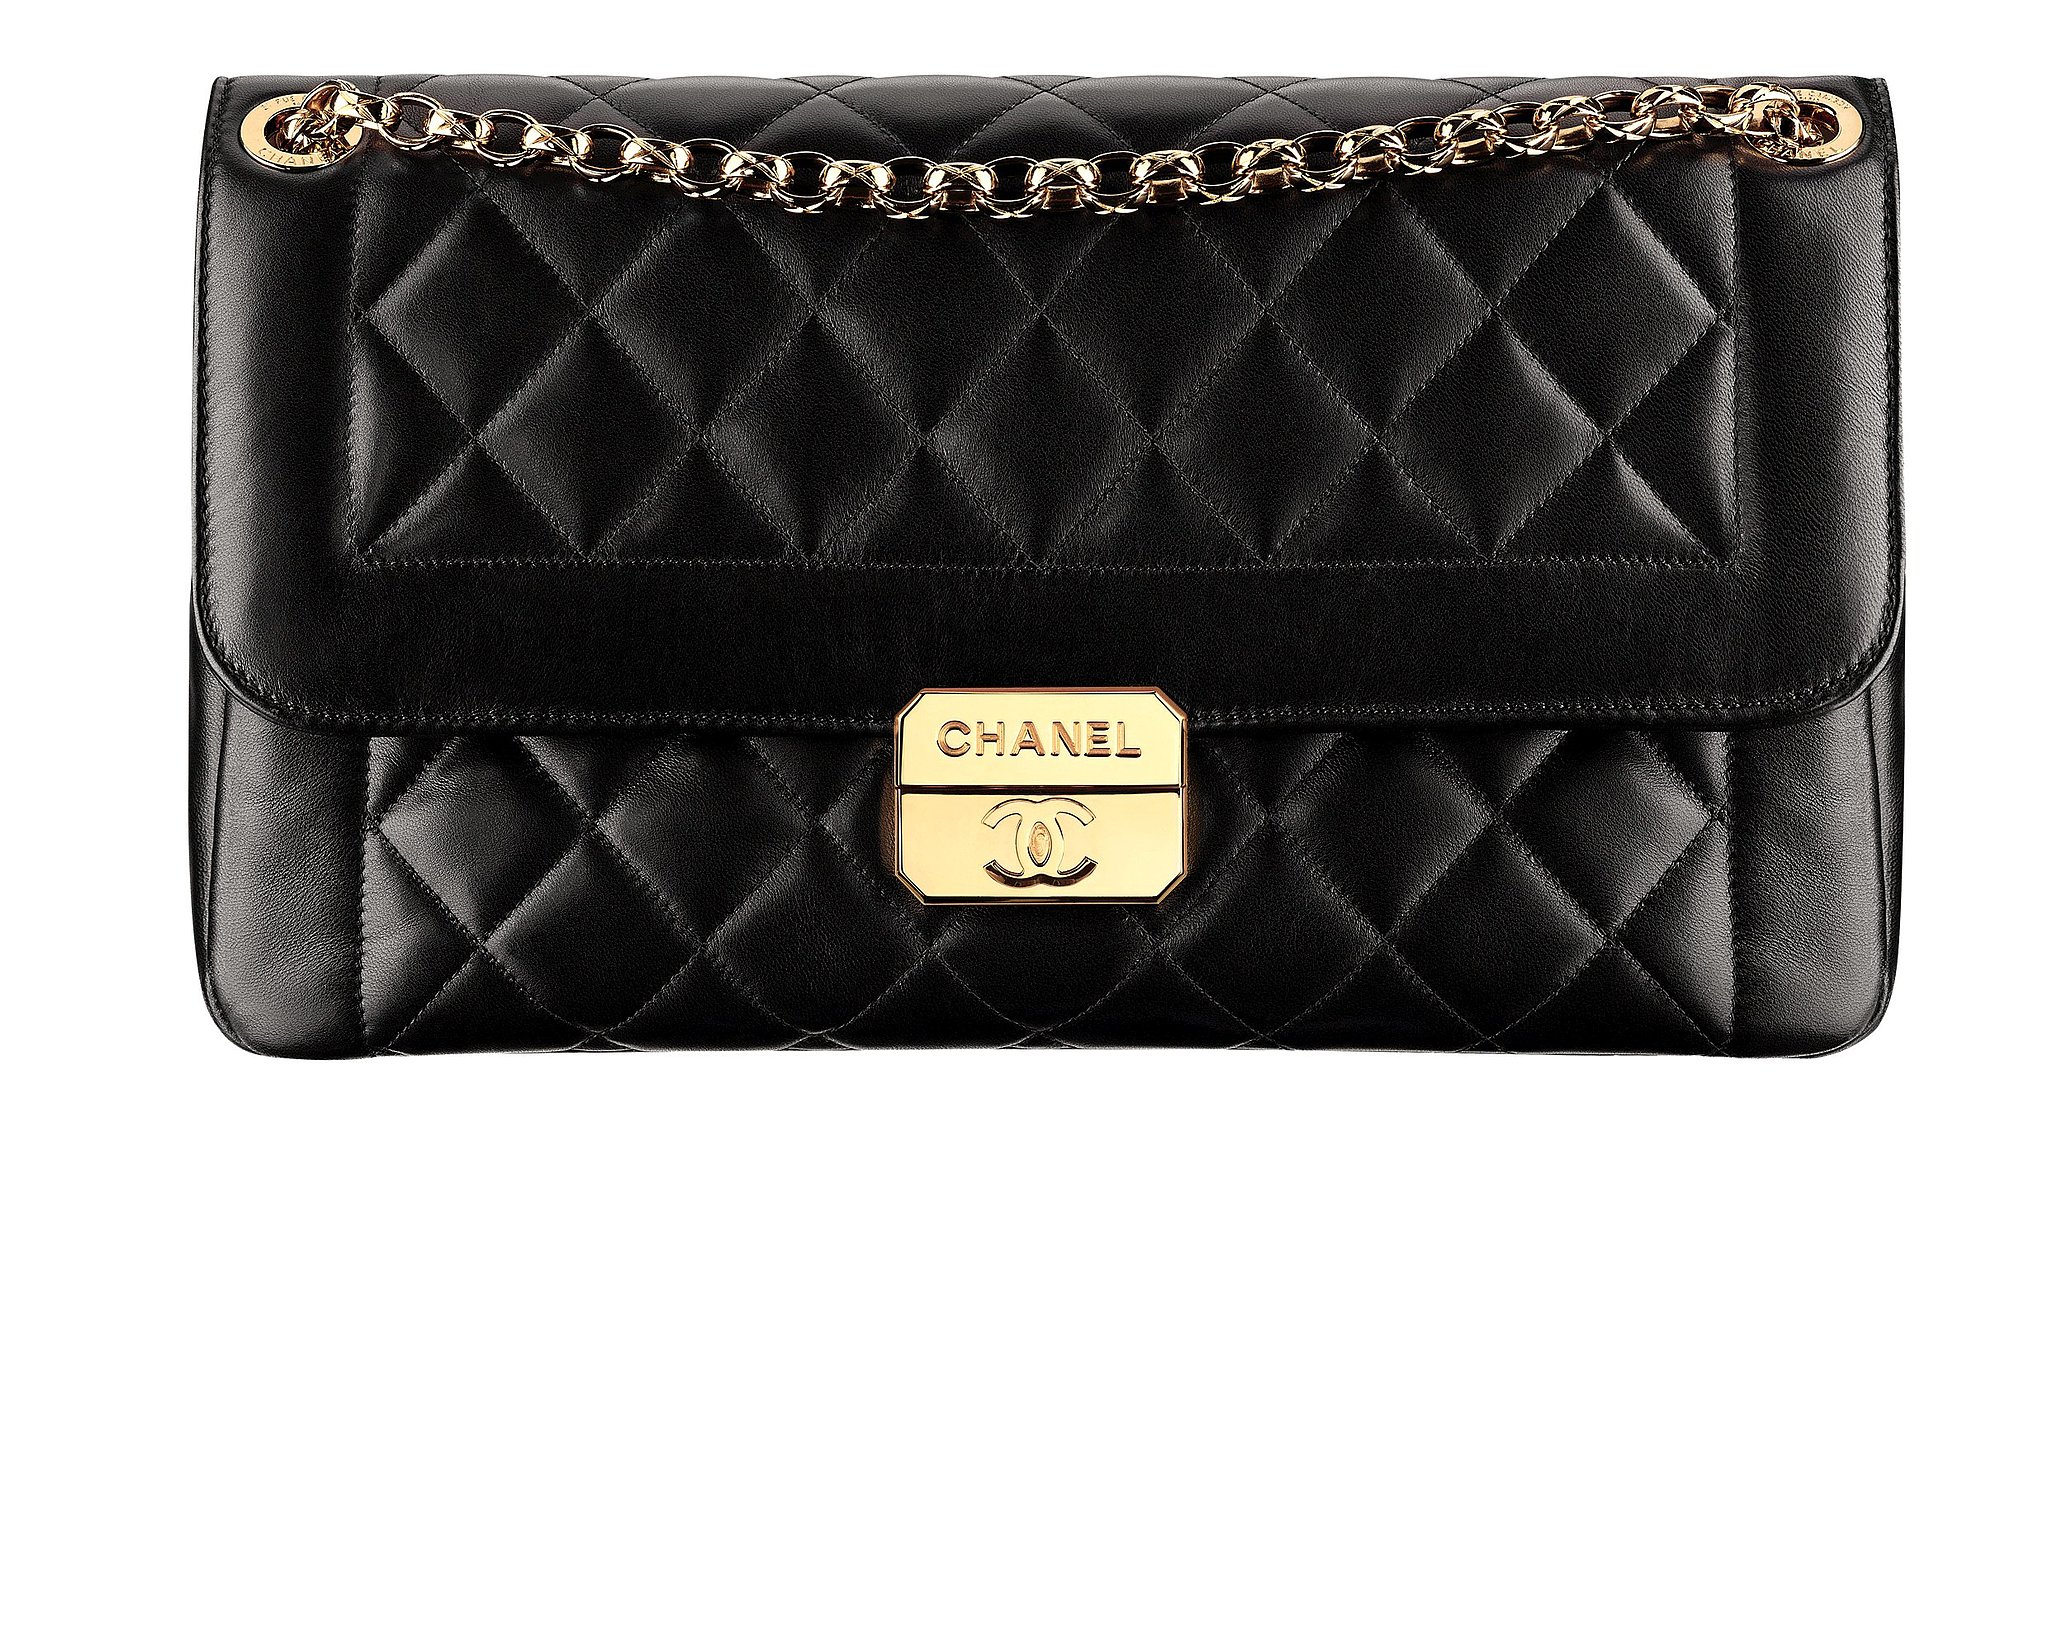 Quilted Leather Chanel Bag Chanel Black Quilted Leather